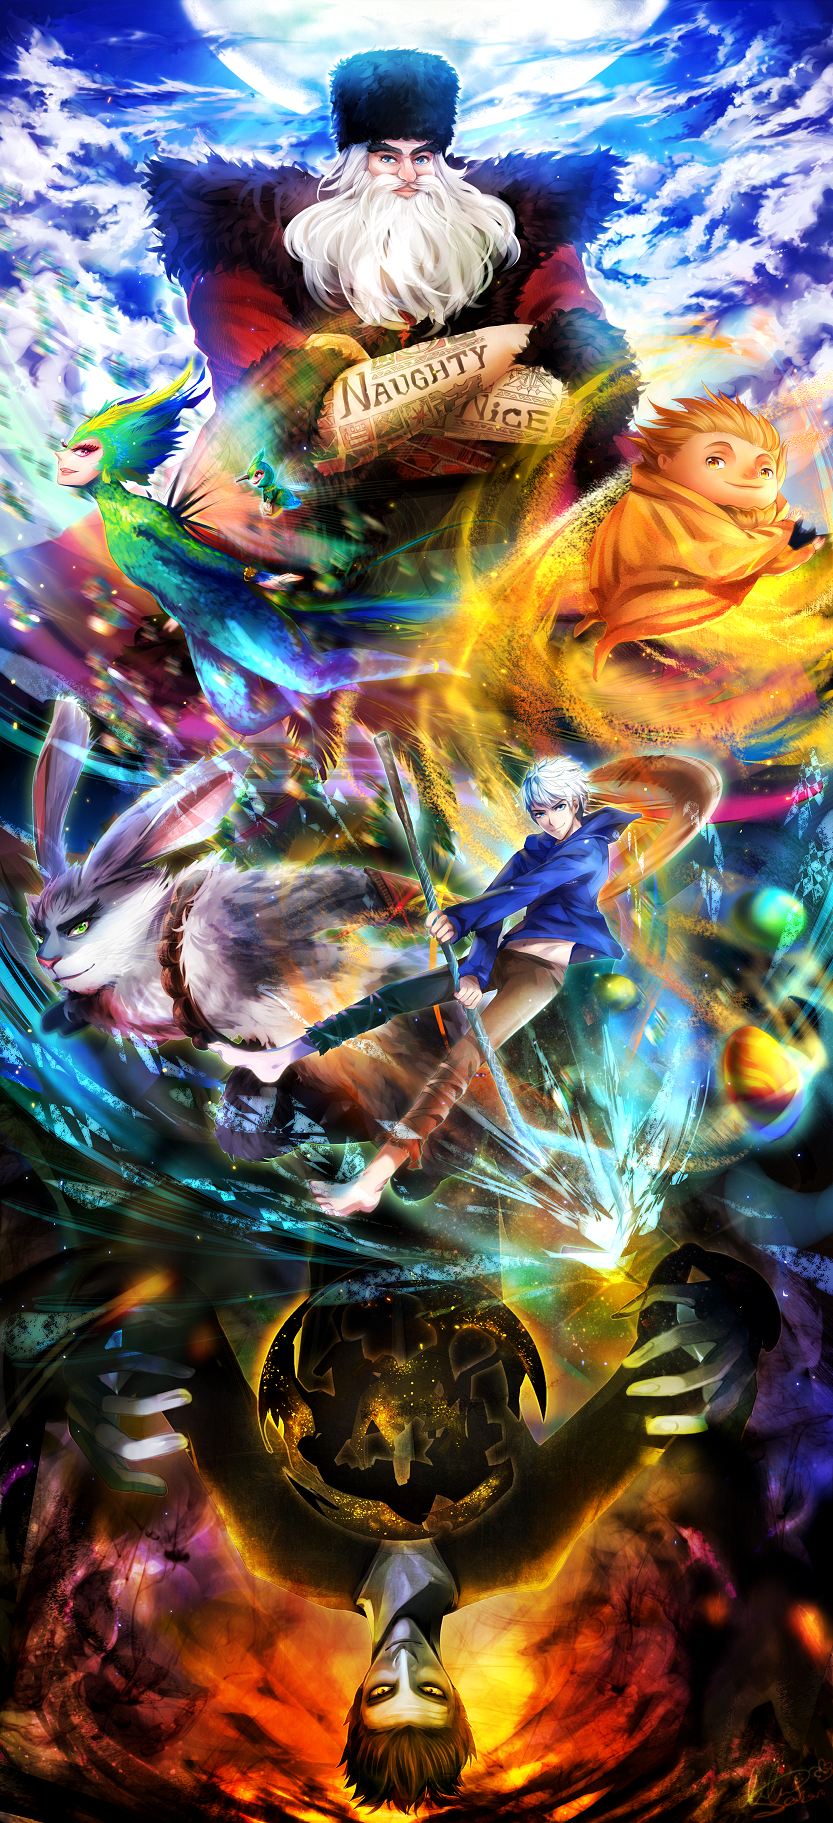 Rise of the Guardians - Fan Art - Colorful Theme - luluseason on dA